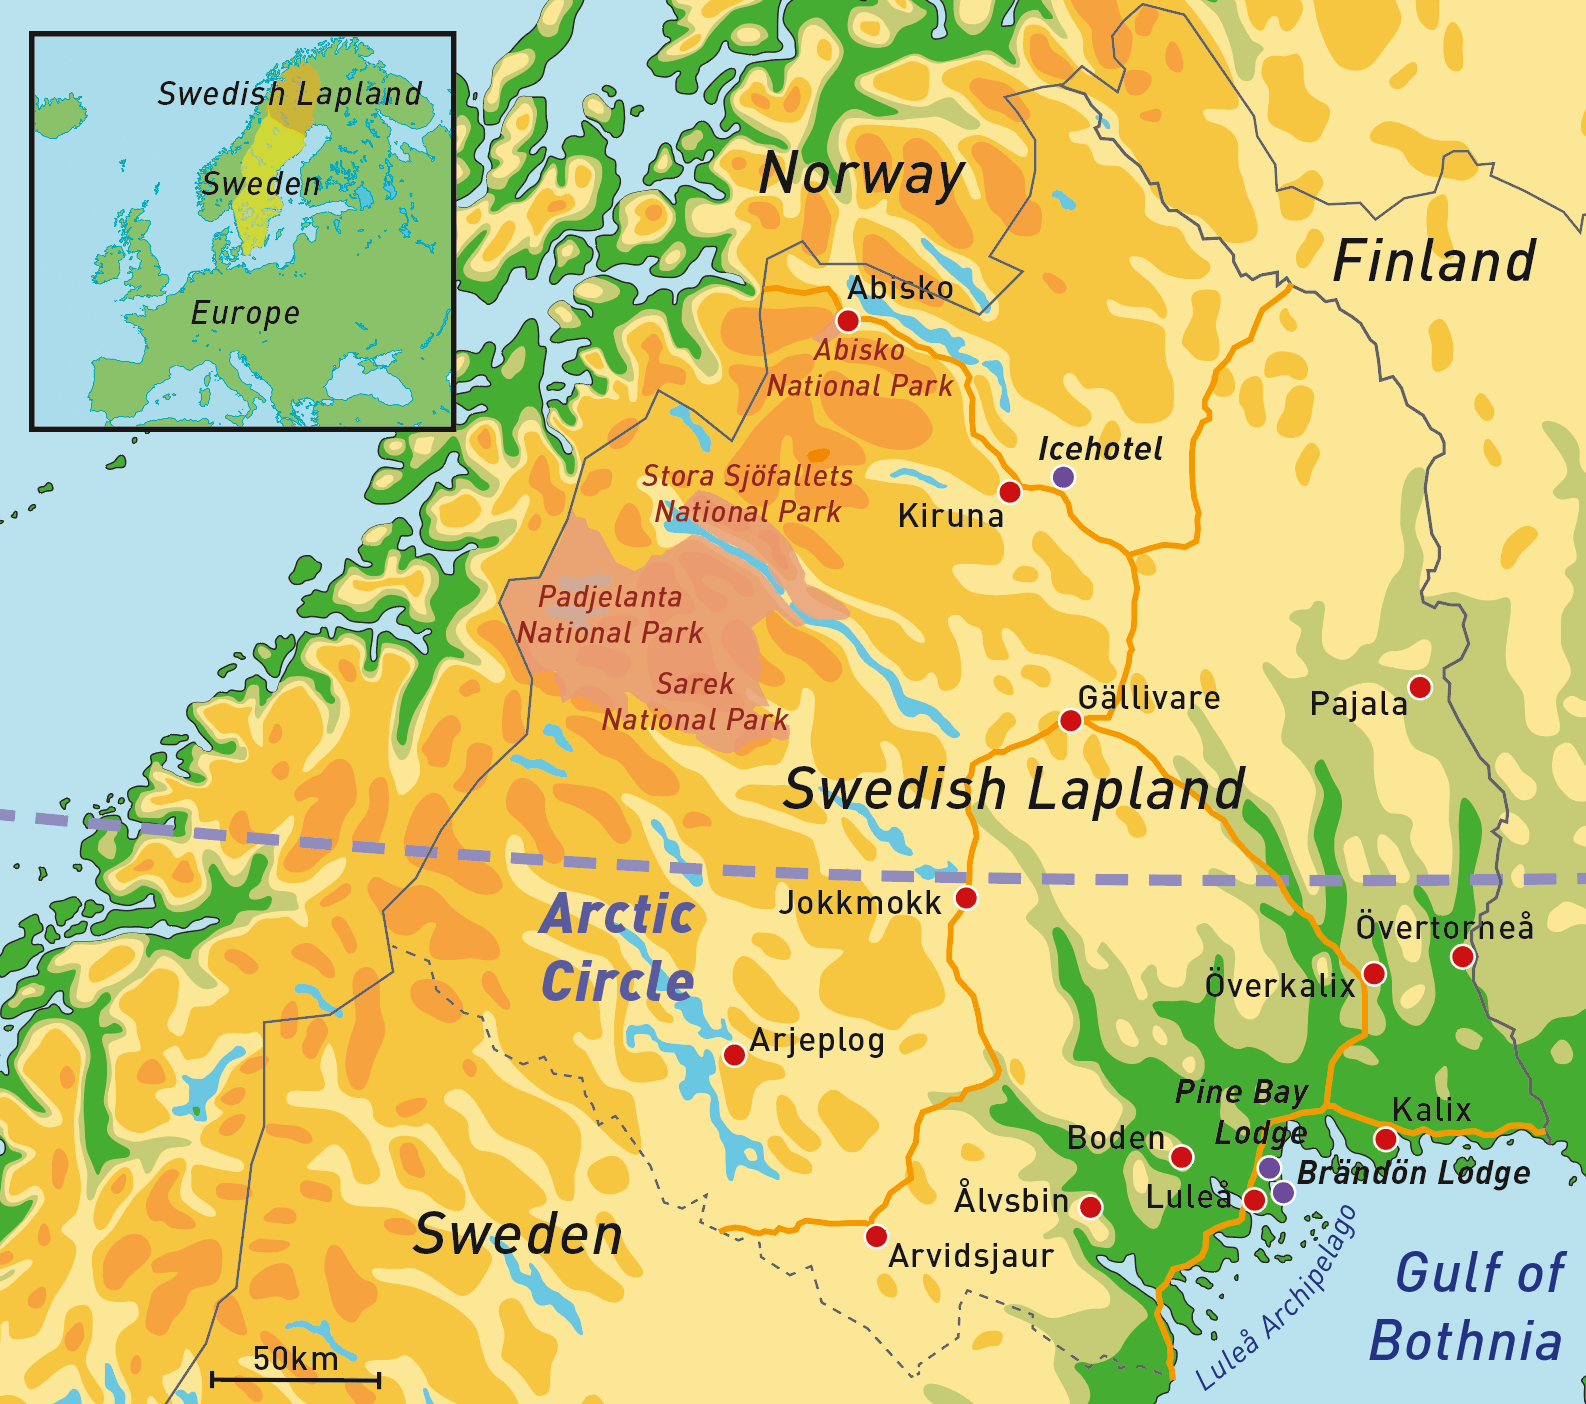 > Swedish Lapland, the Arctic north of Sweden: Luleå, Pine Bay Lodge and Brändön Lodge are shown in the south east; Kiruna and the nearby Icehotel are in the north.